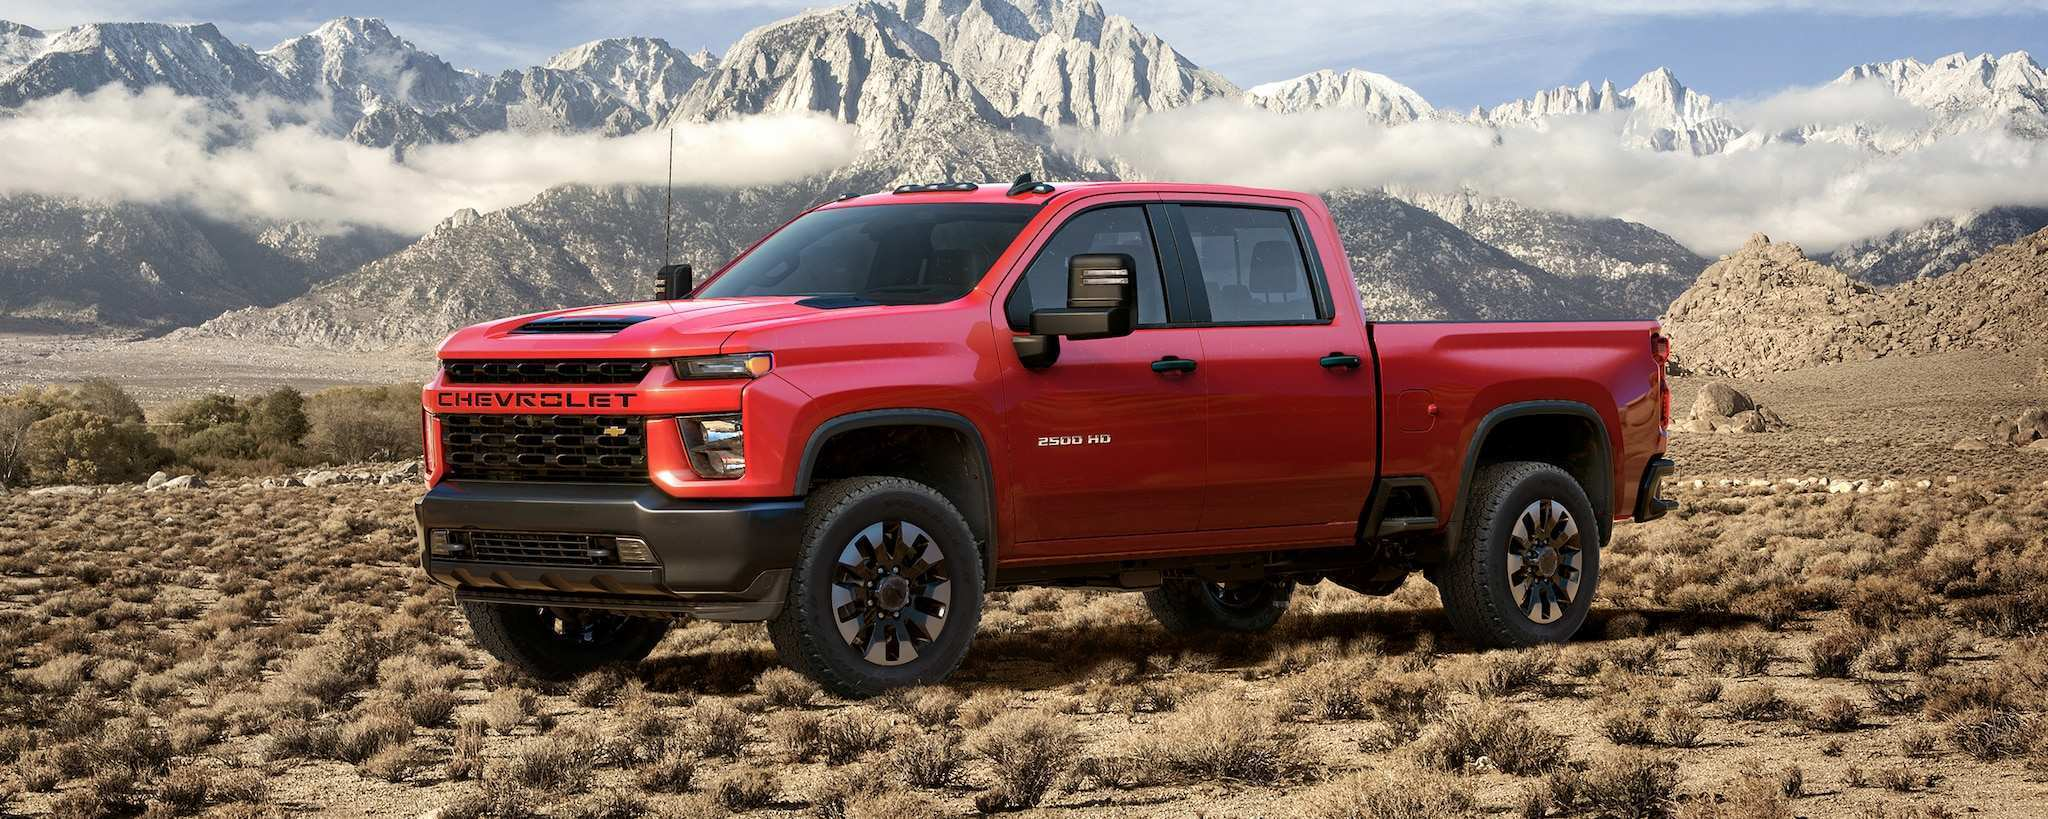 60 A Chevrolet Truck 2020 Specs And Review